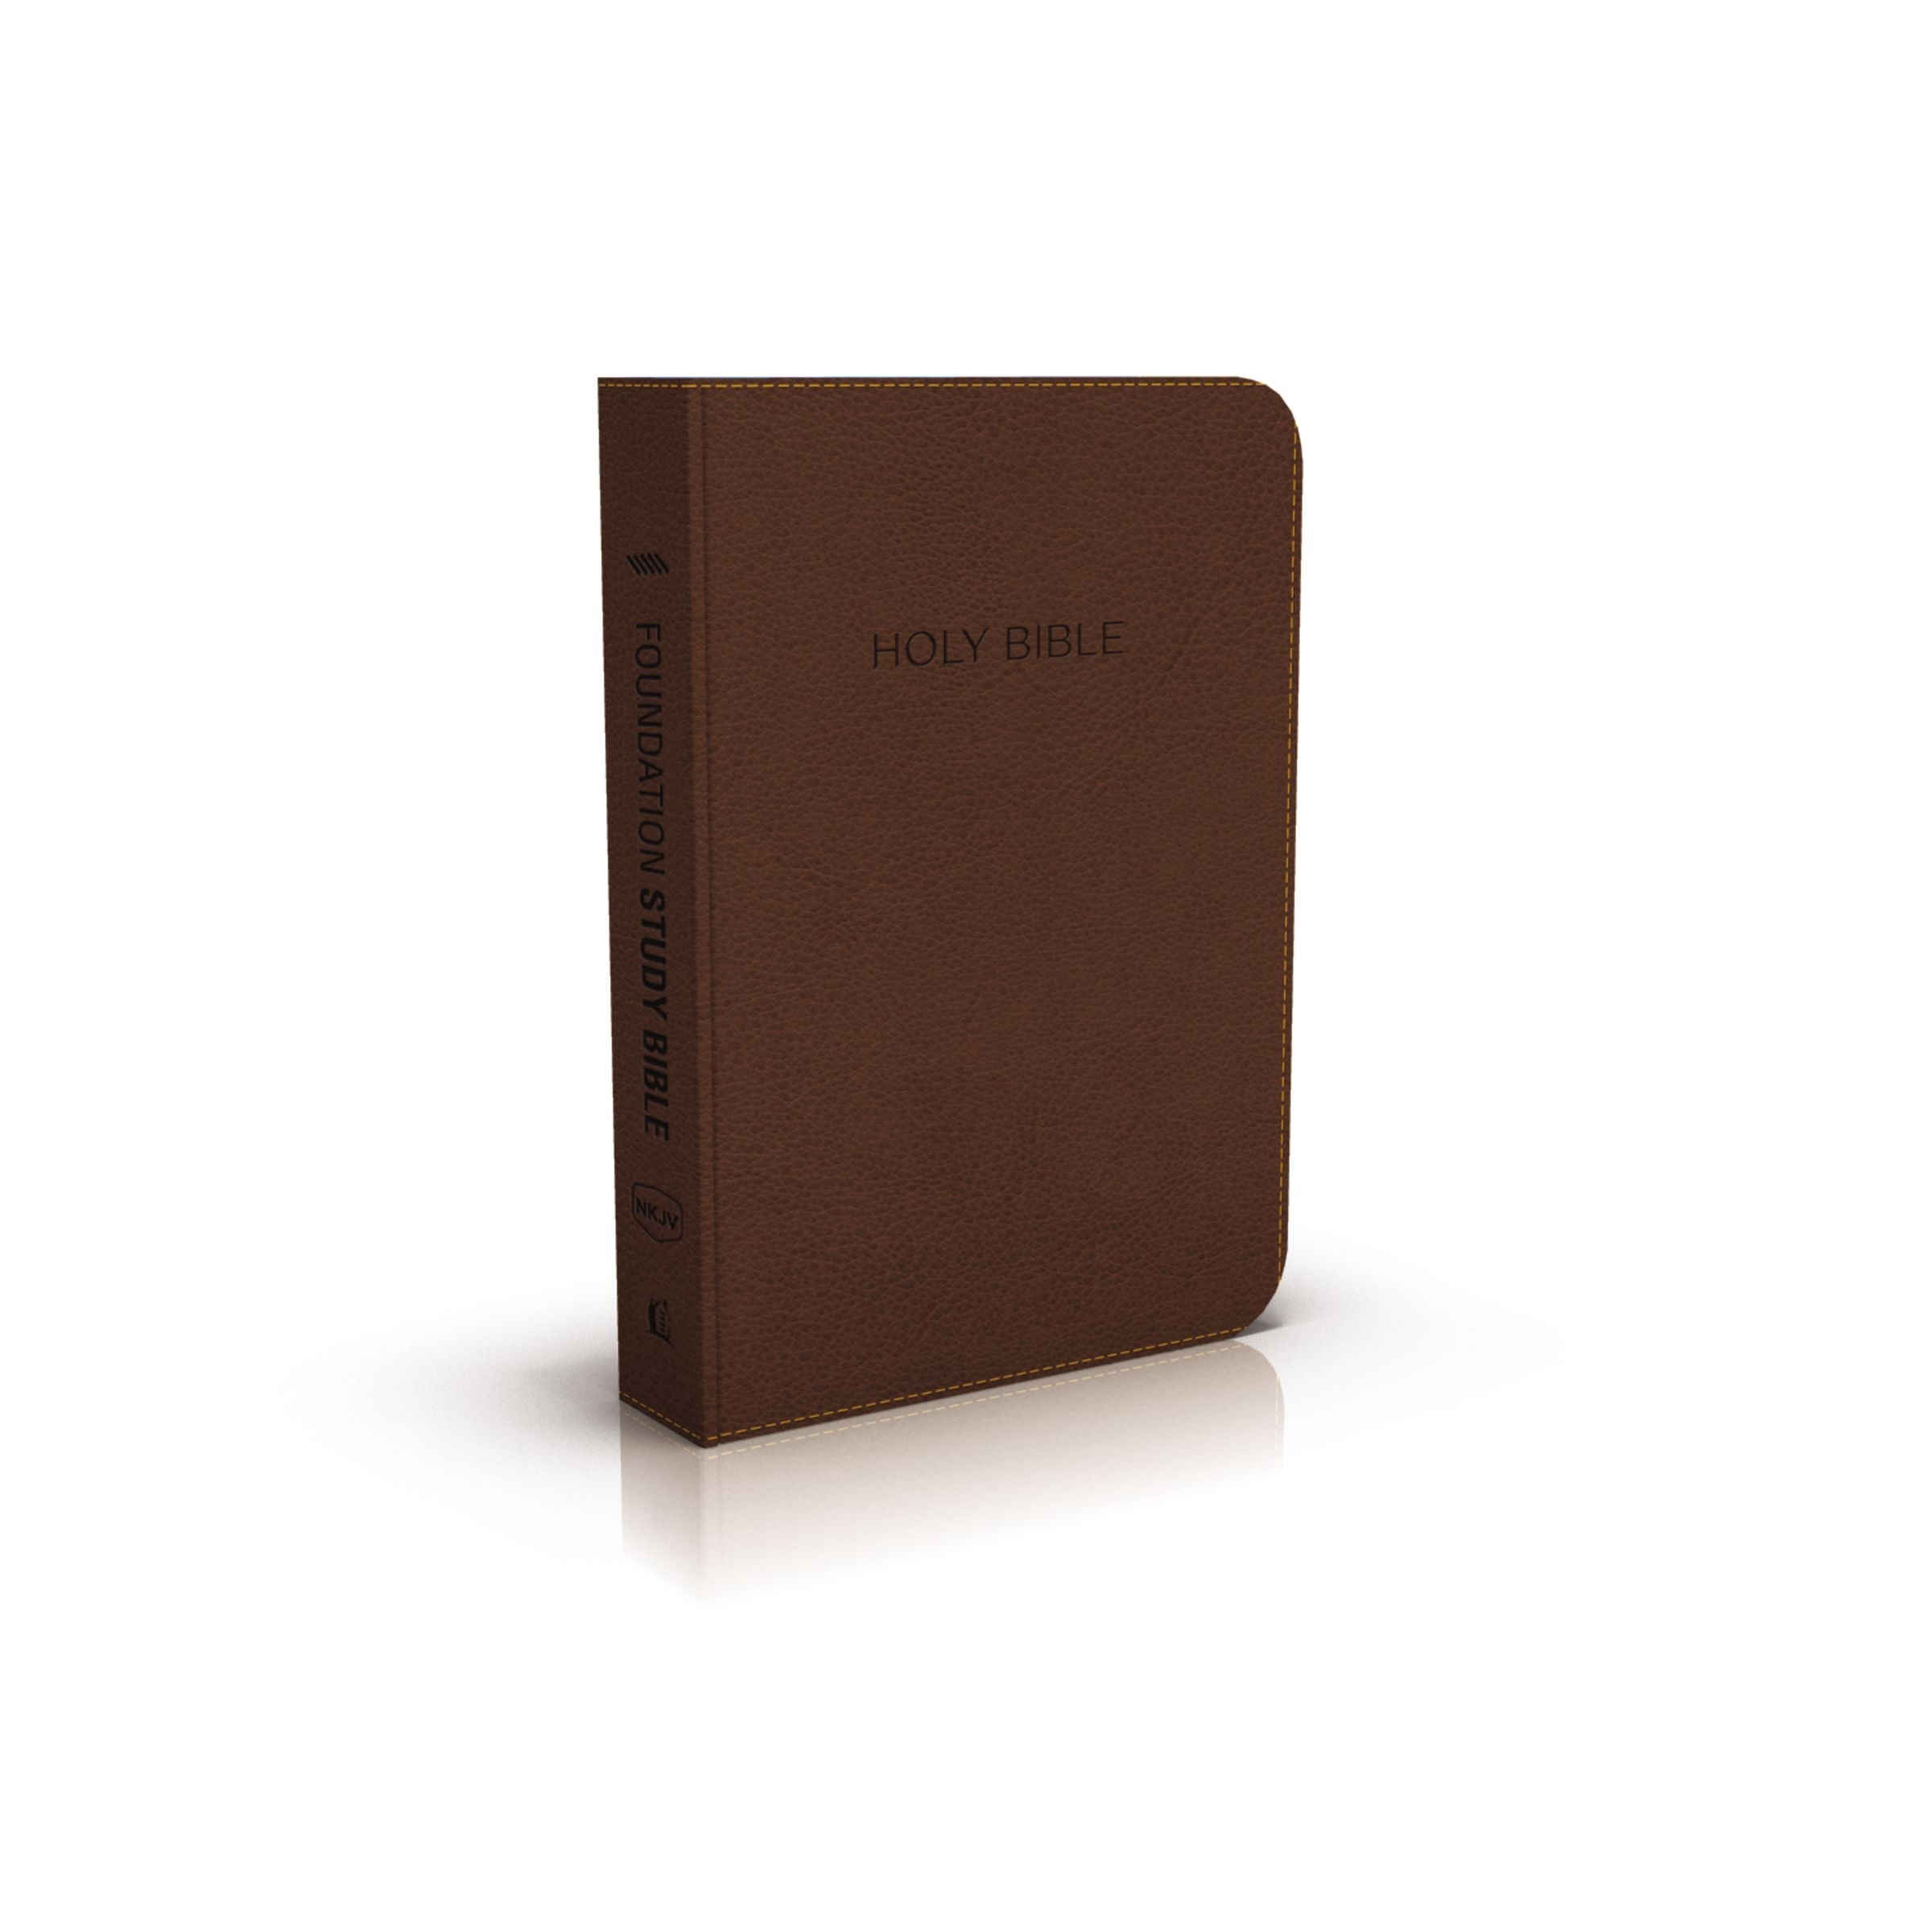 NKJV Foundation Study Bible-Earth Brown LeatherSoft